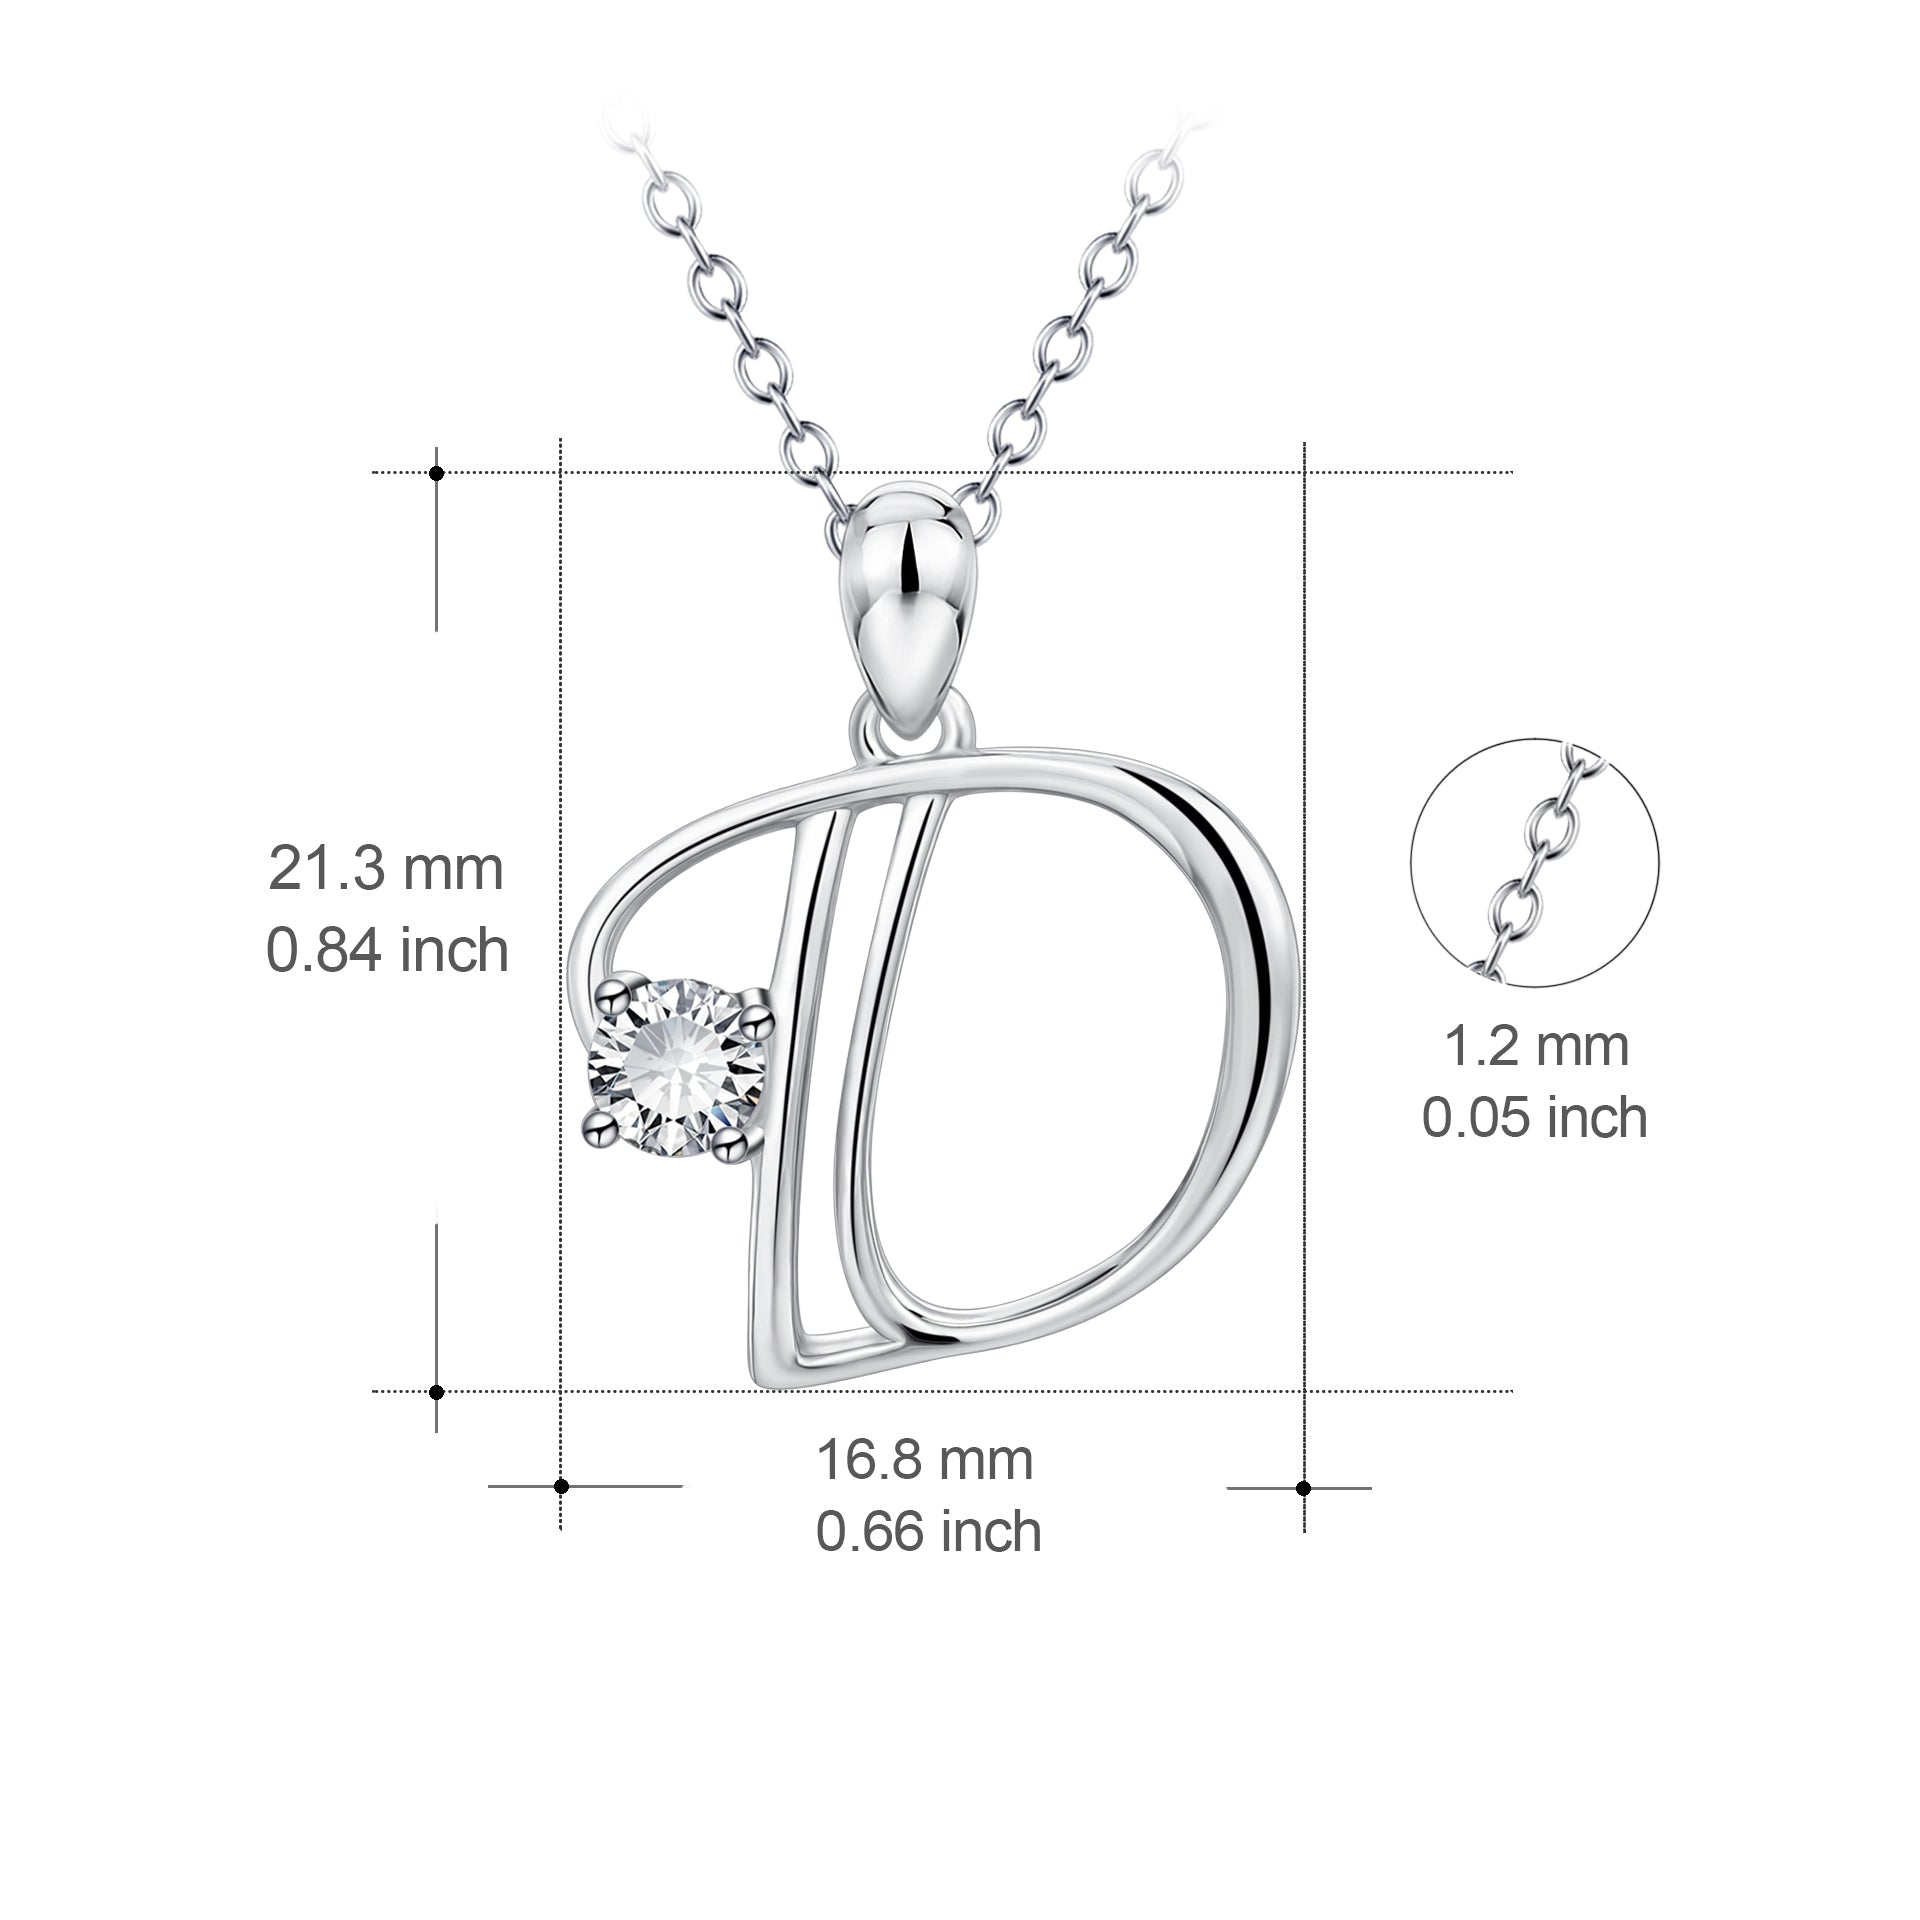 Factory New  Letter Necklace High Quality Chain Pendant Necklace